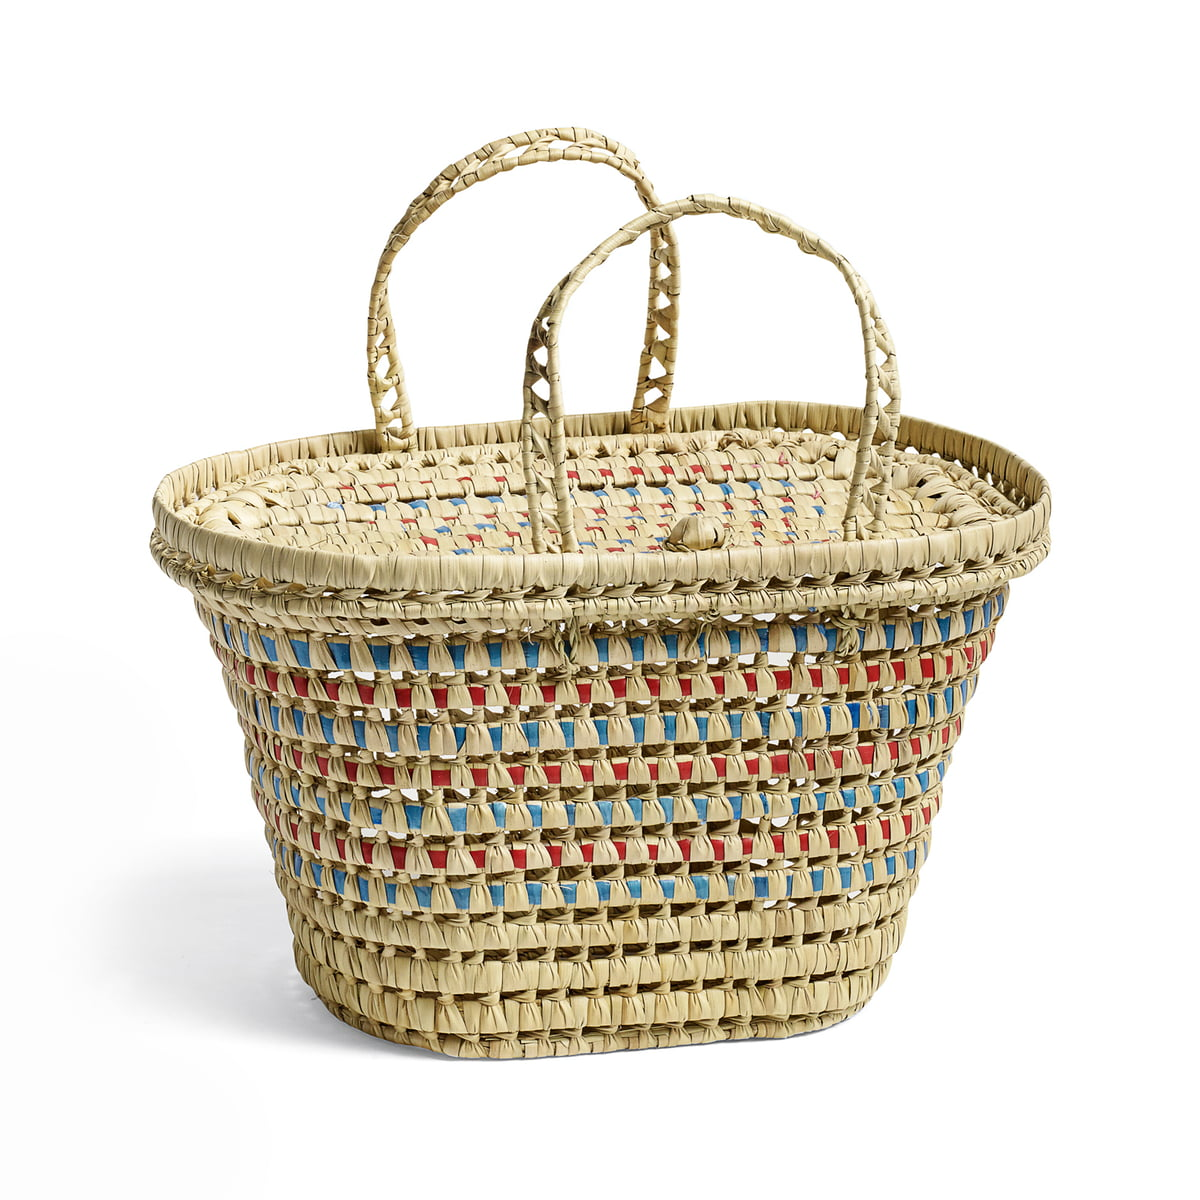 Picnic Basket by Hay | Connox